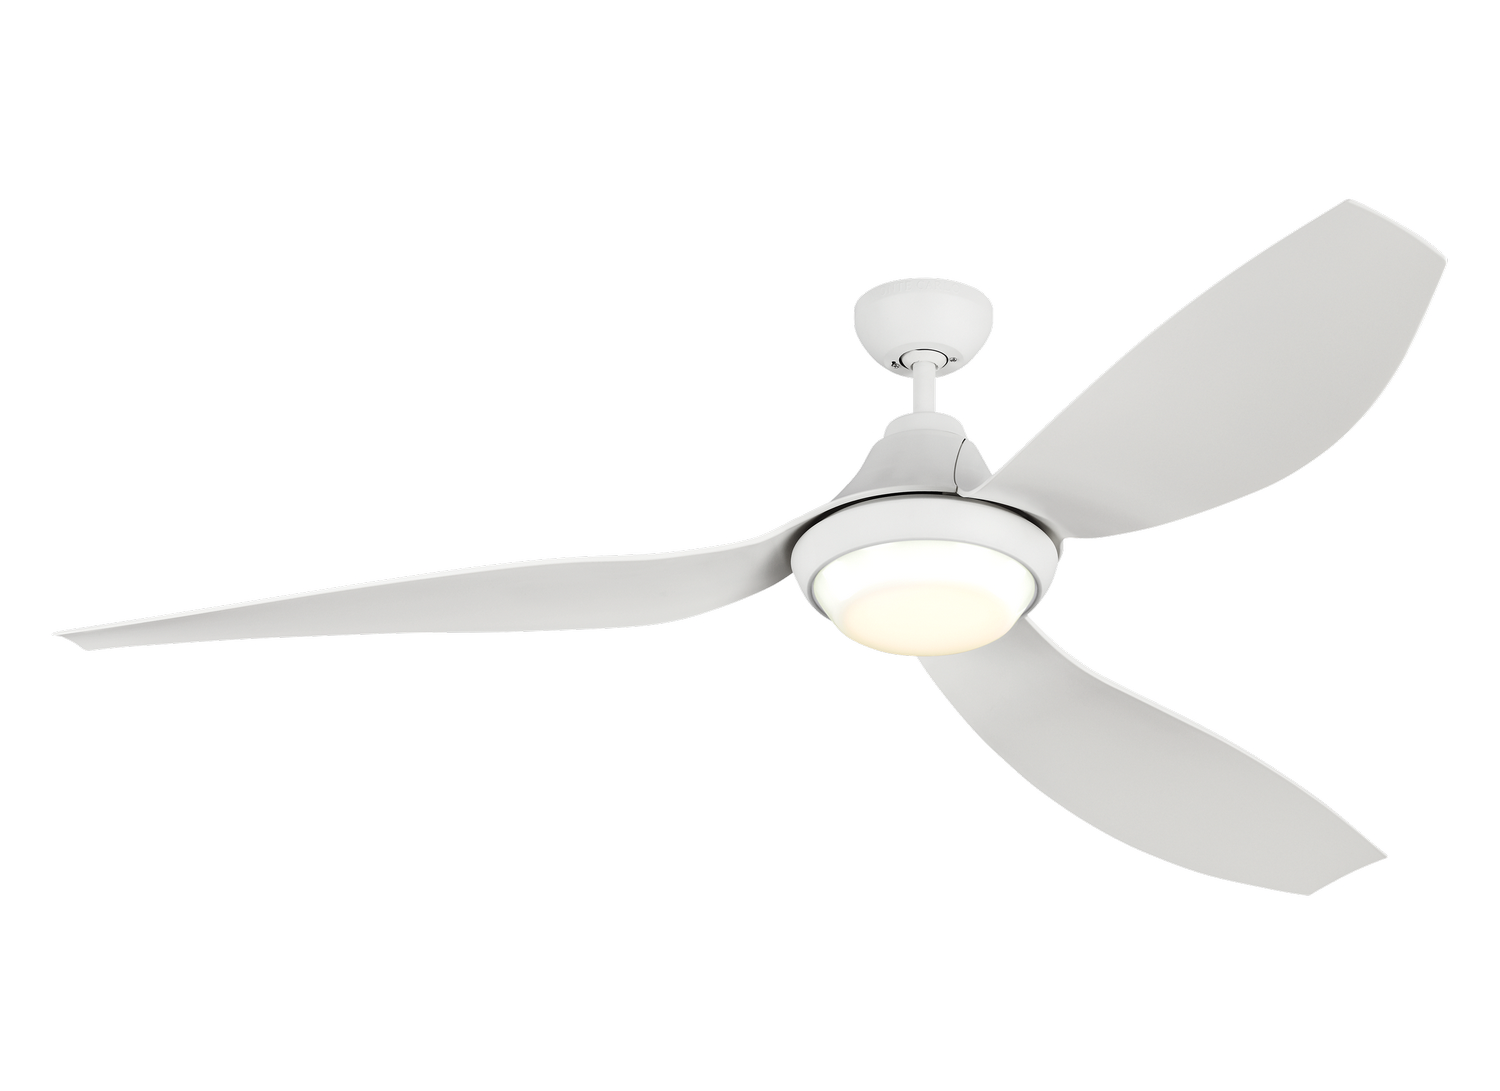 64 inch Ceiling Fan from the Avvo Max collection by Monte Carlo 3AVMR64RZWD